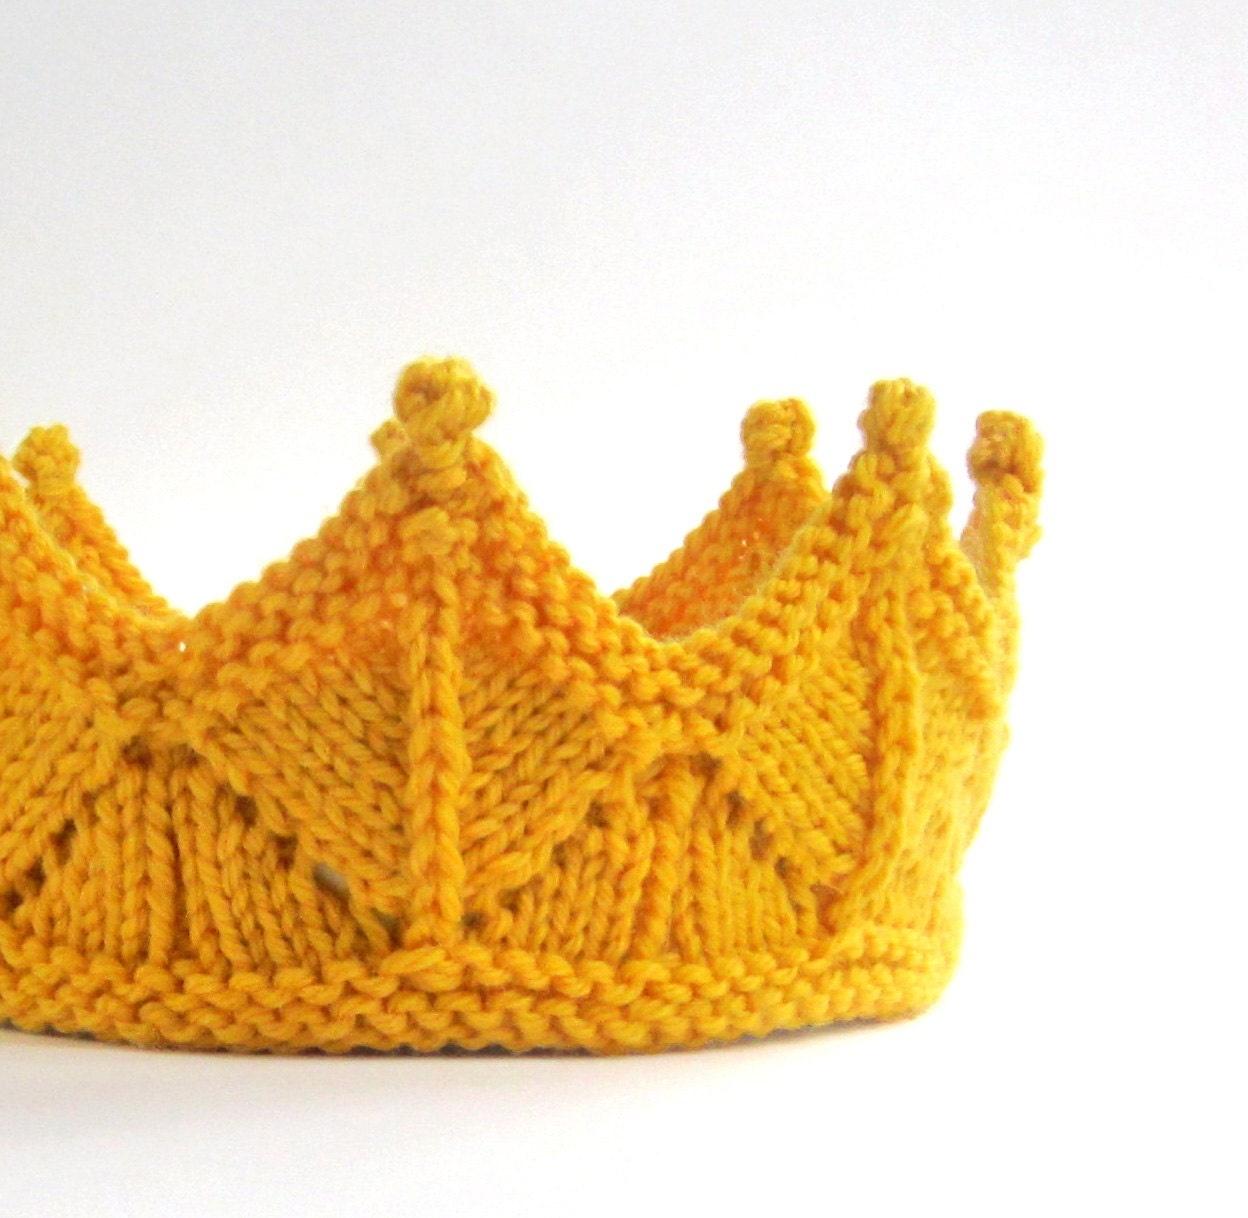 Knitted Baby Crown Pattern : Golden Yellow Lace Knit Crown Headband for Dress by ...